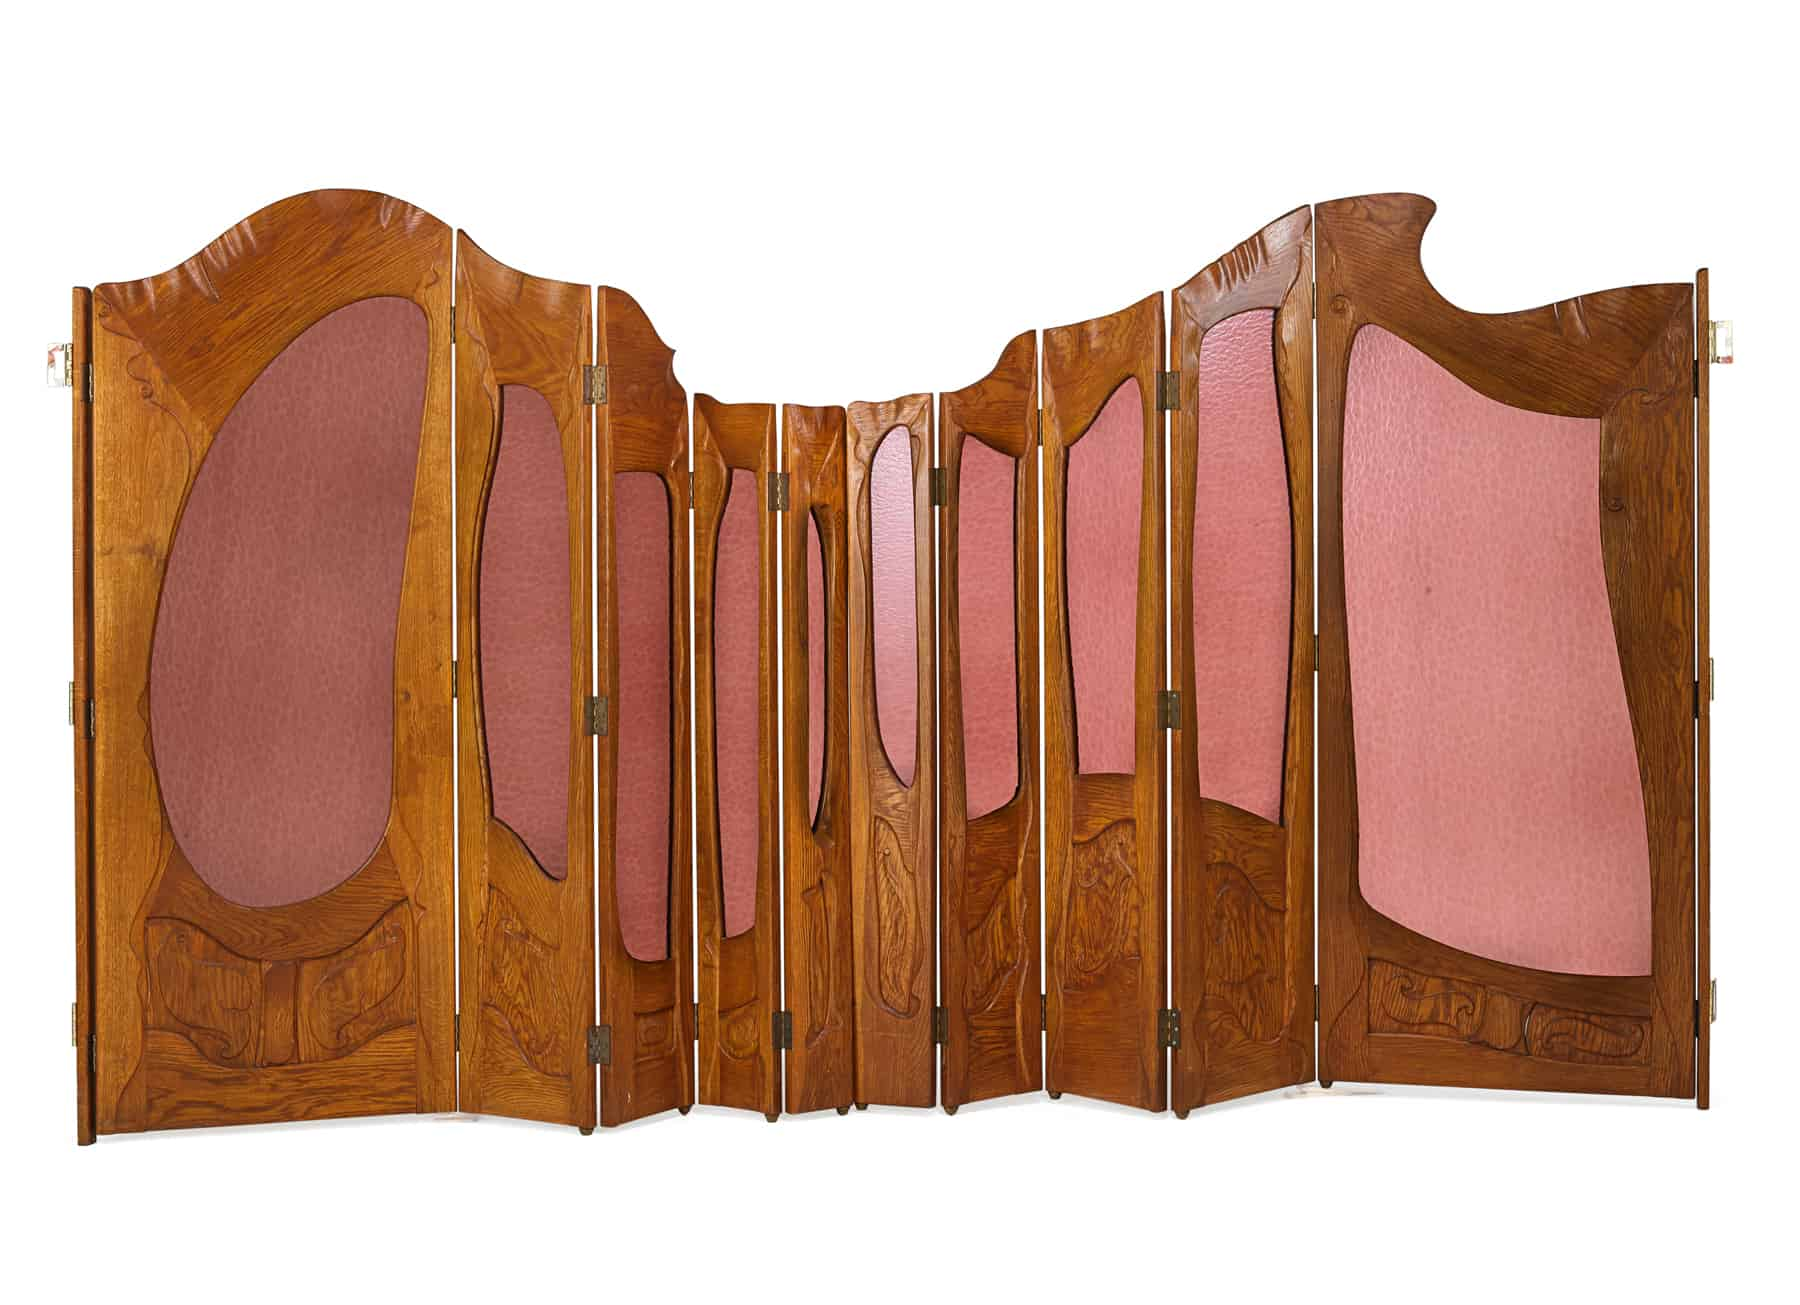 Lot 580 After Antoni Gaudi Two-Part Folding Screen Sold for: $25,000